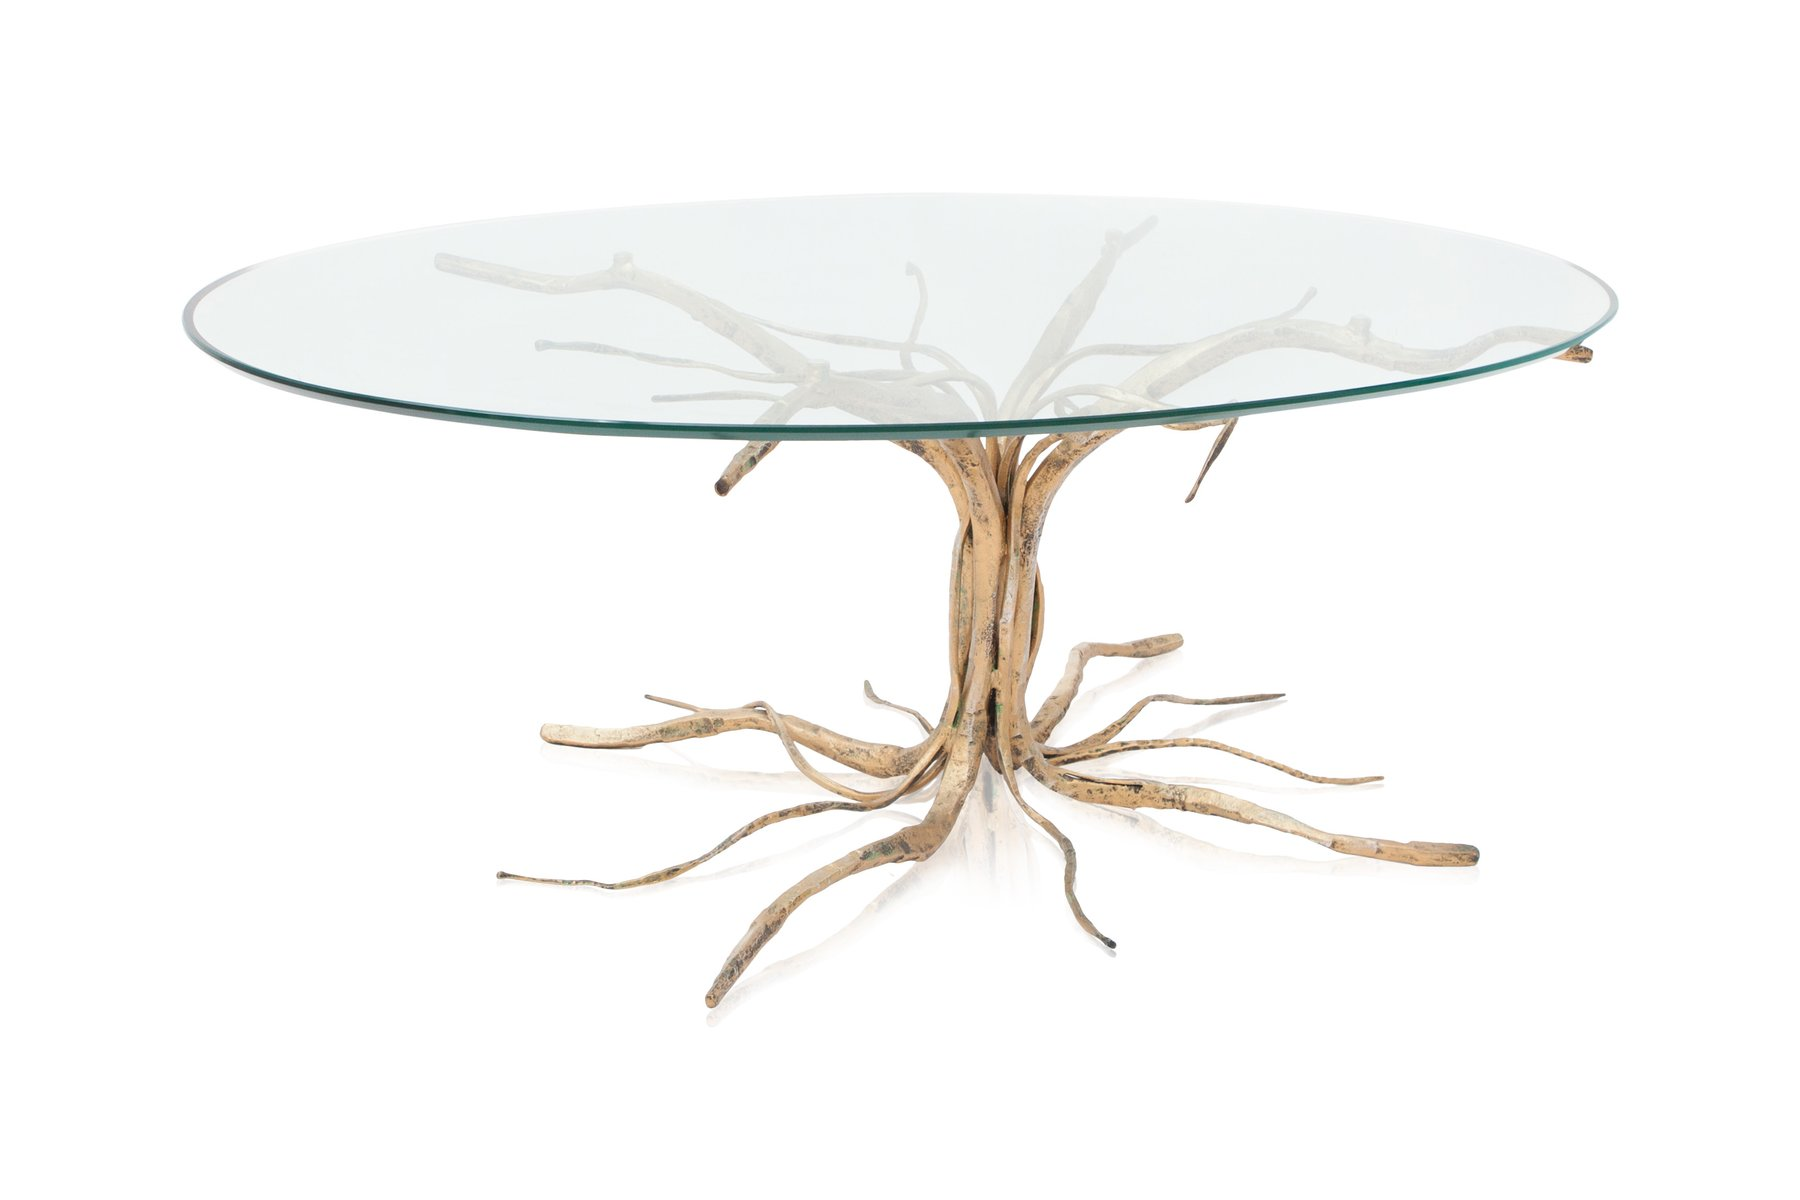 Bronze Coffee Table by Salvino Marsura 1959 for sale at Pamono